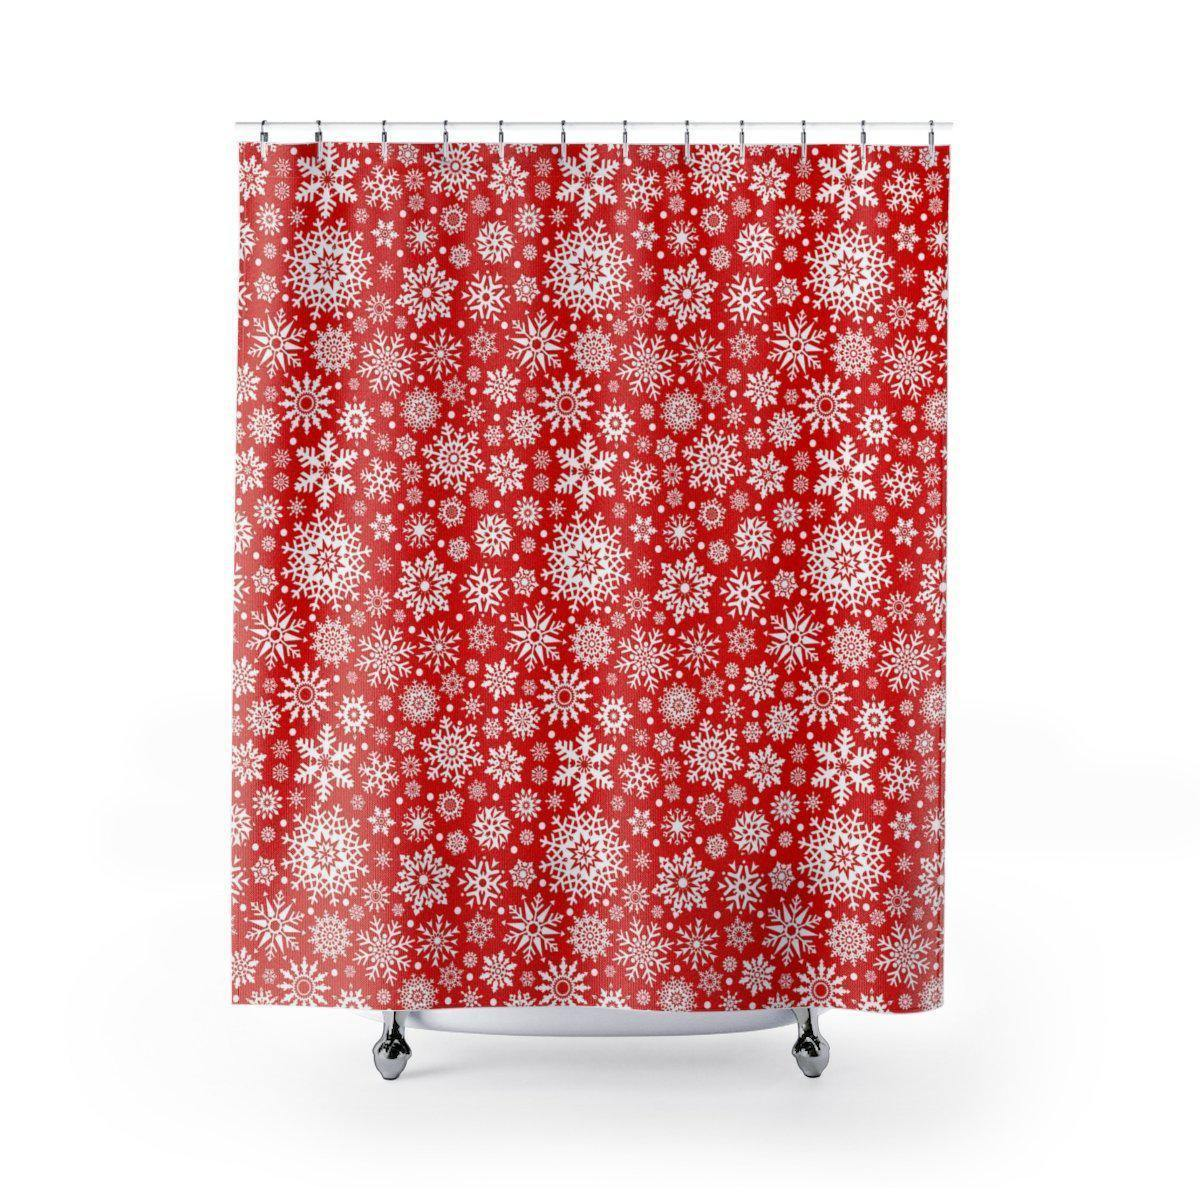 Snowflake Christmas Shower Curtain - Shower Curtains - W.FRANCIS